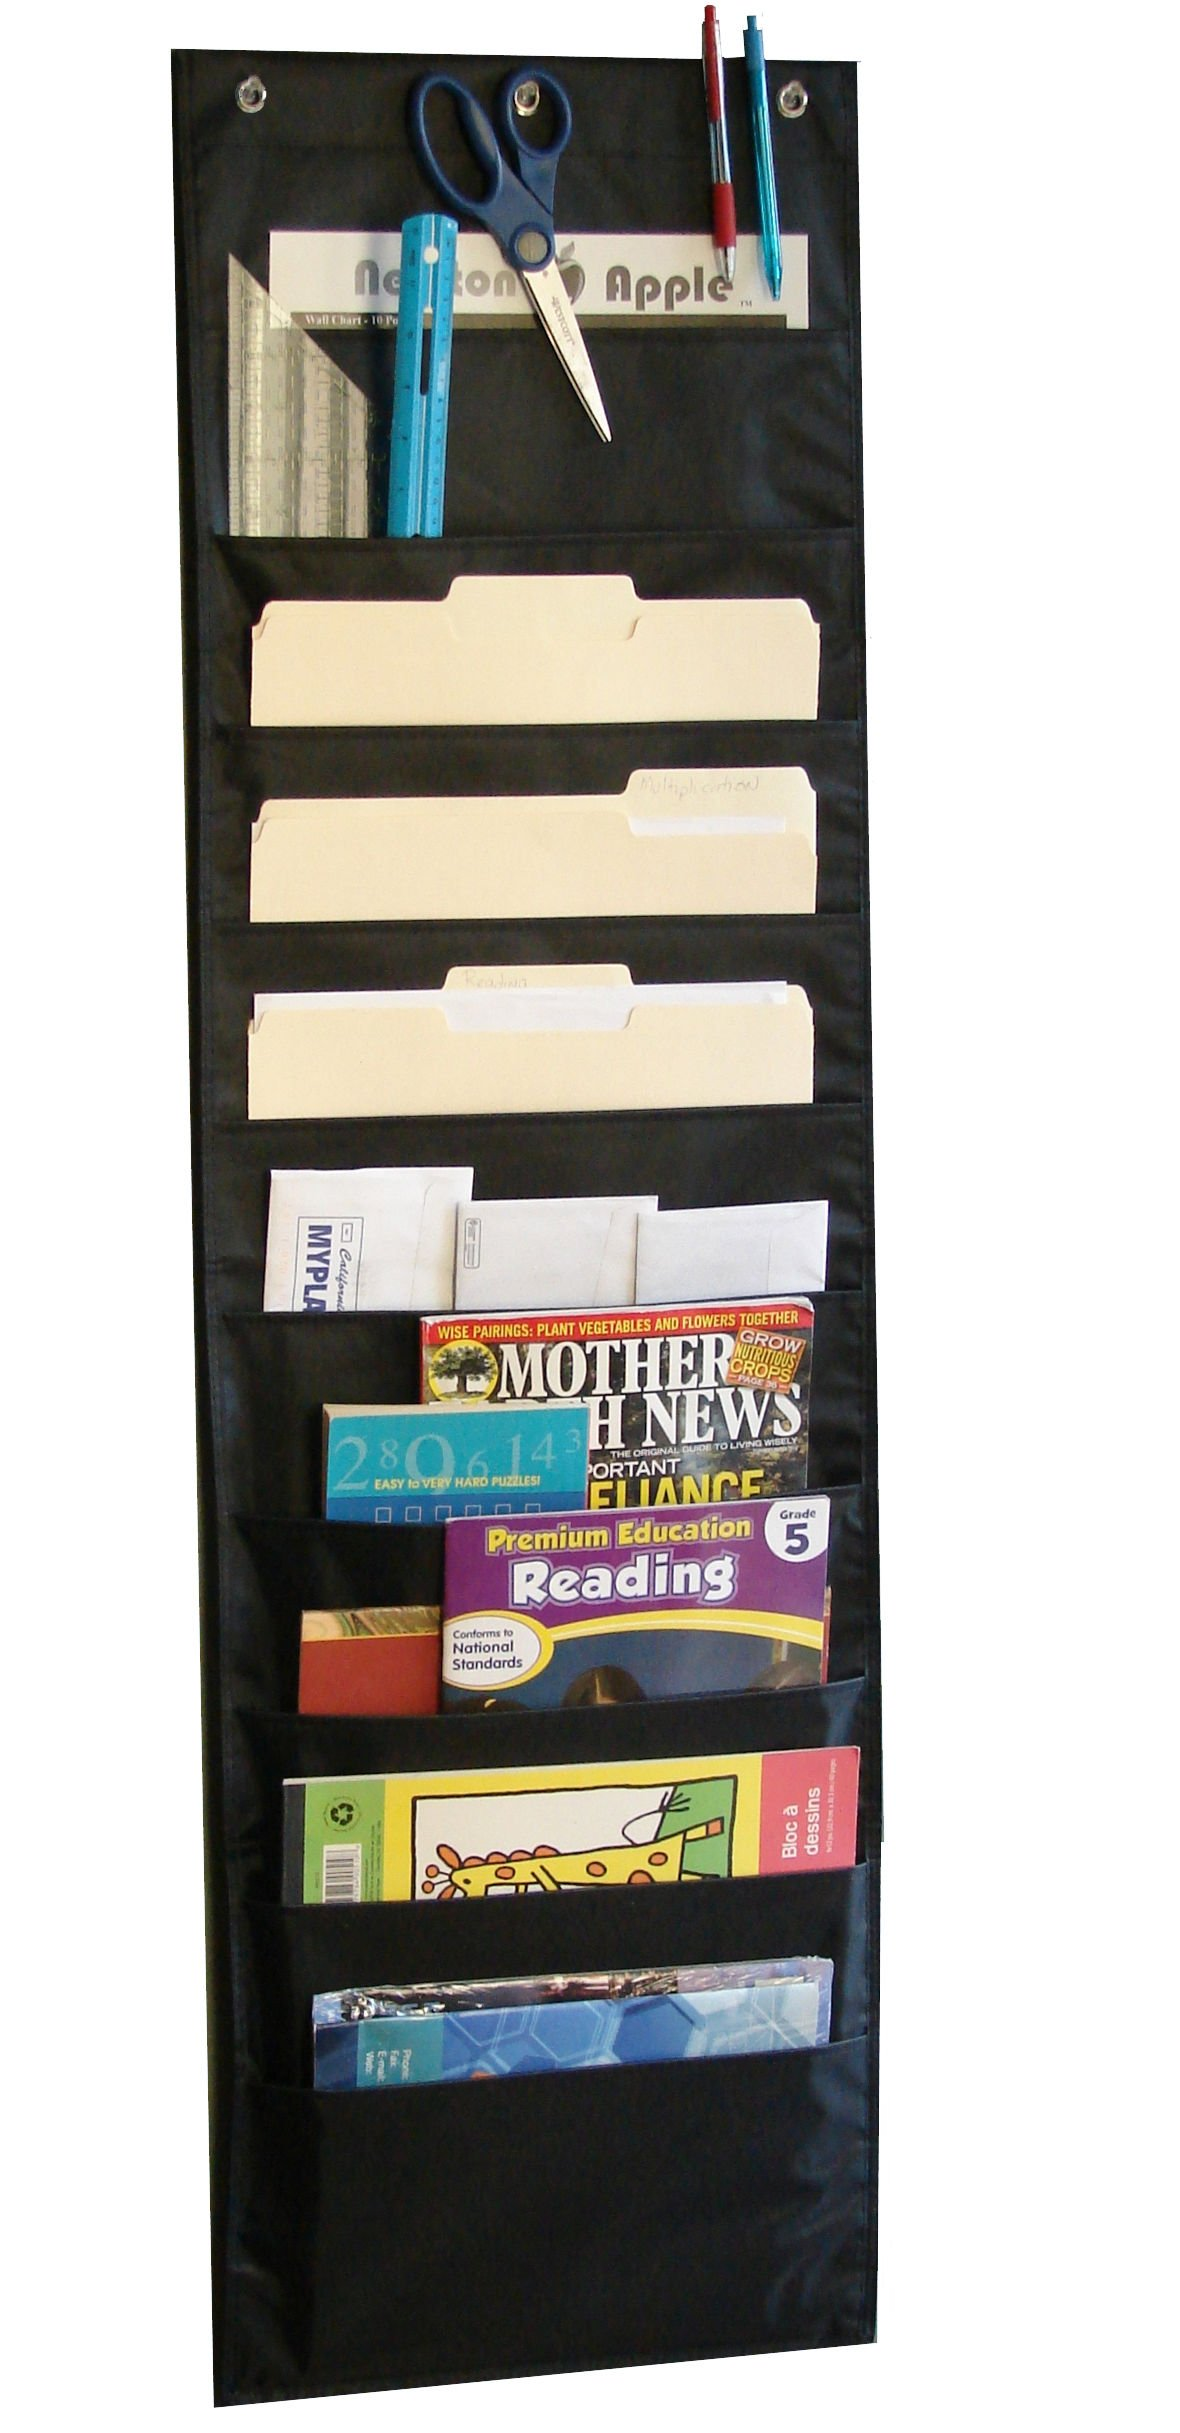 Hanging Paper Organizer & Wall File Holder - Premium Double Stitched Classroom Pocket Chart for Cubicle Office School Organization – Flat & Vertical Cascading Black 10 Pockets | Newton Y Apple by Newton Y Apple (Image #2)